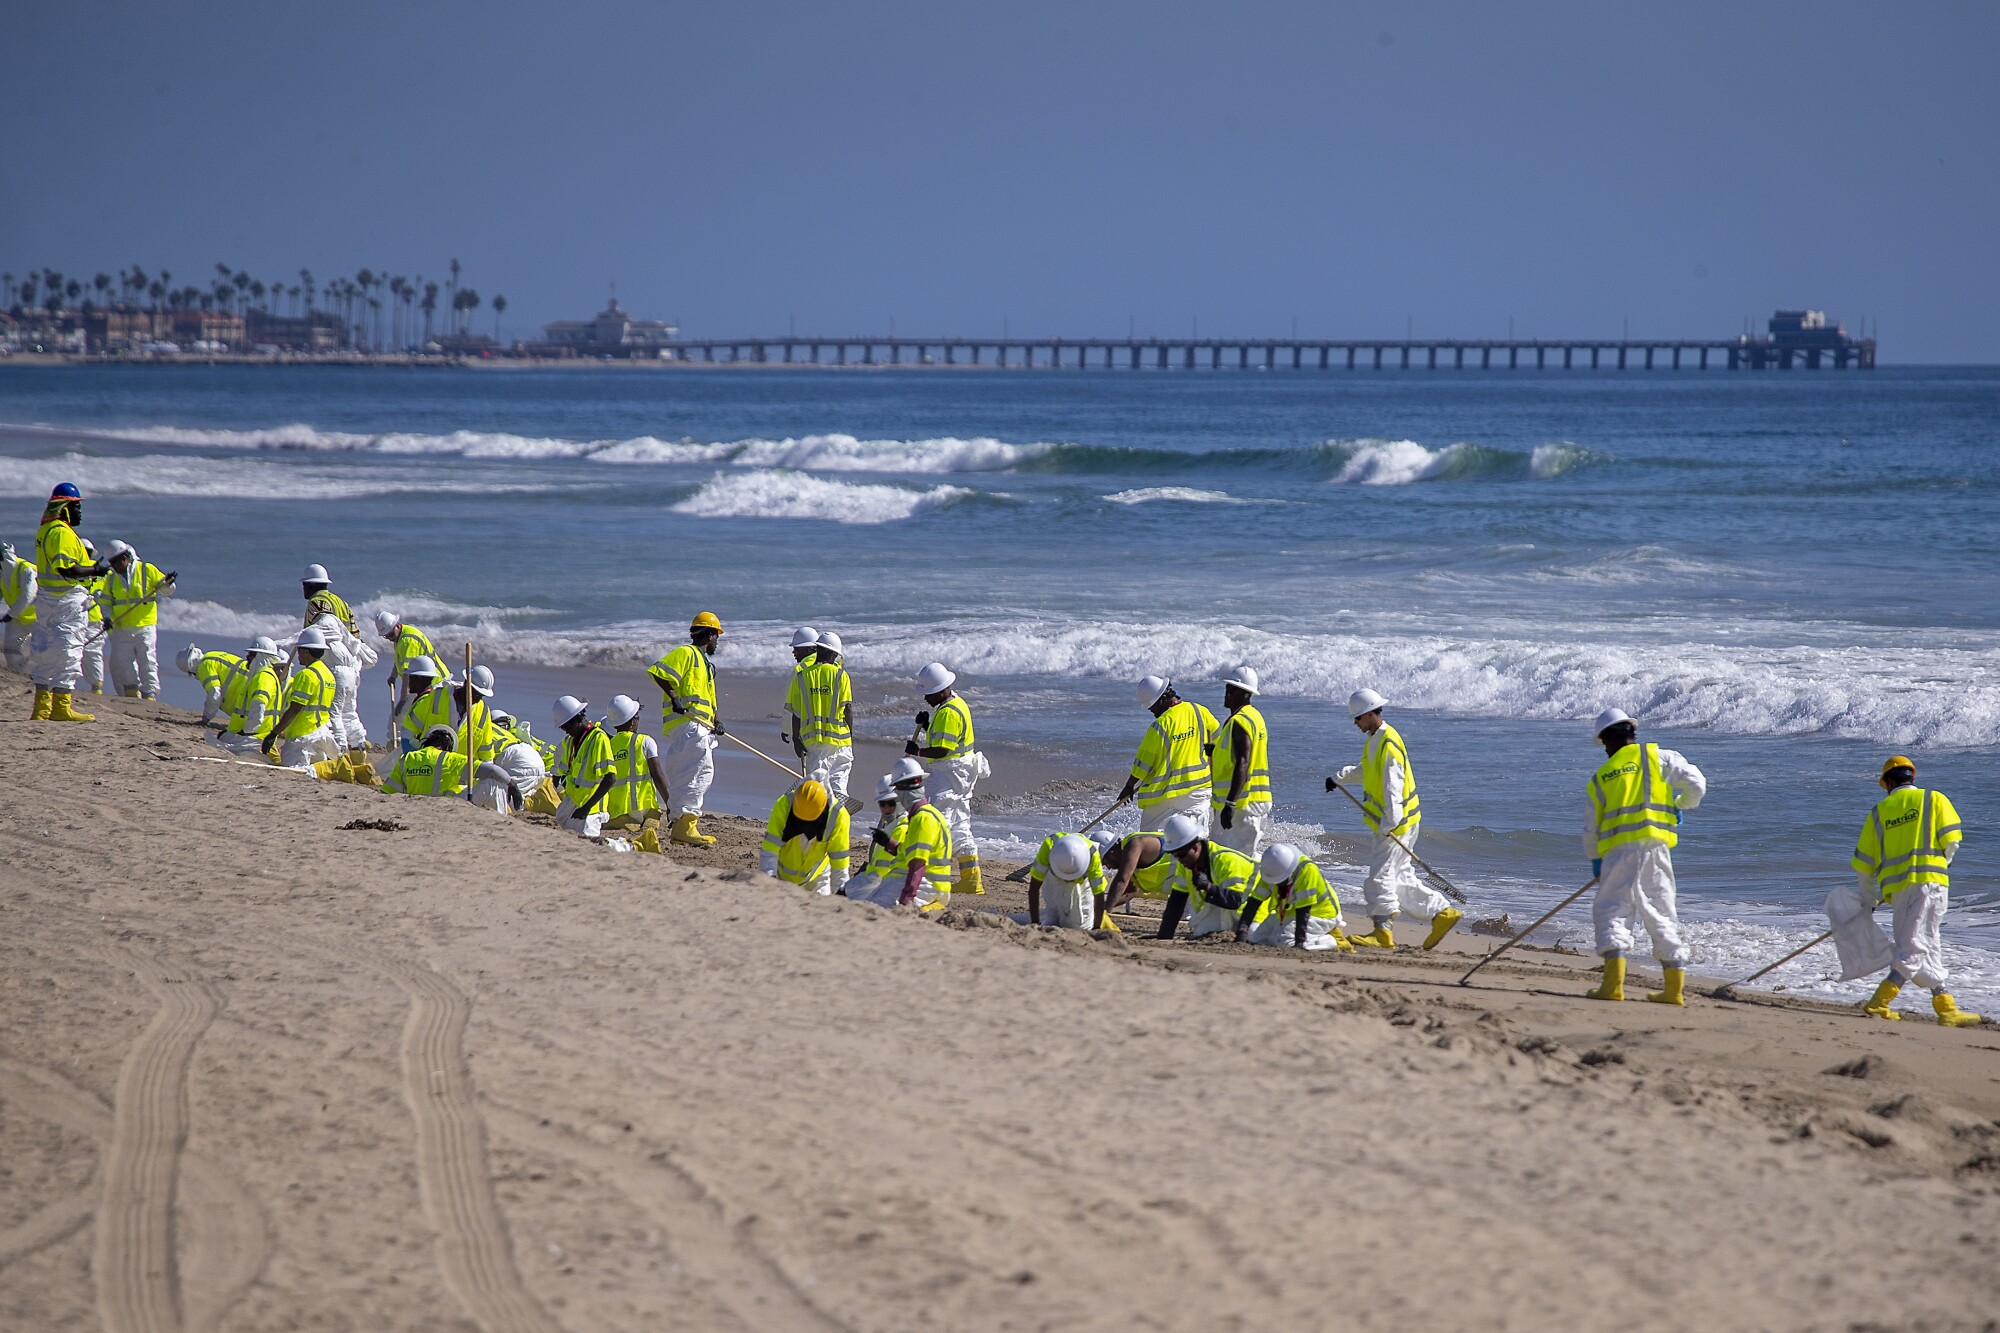 Cleanup crews in yellow vests on the beach